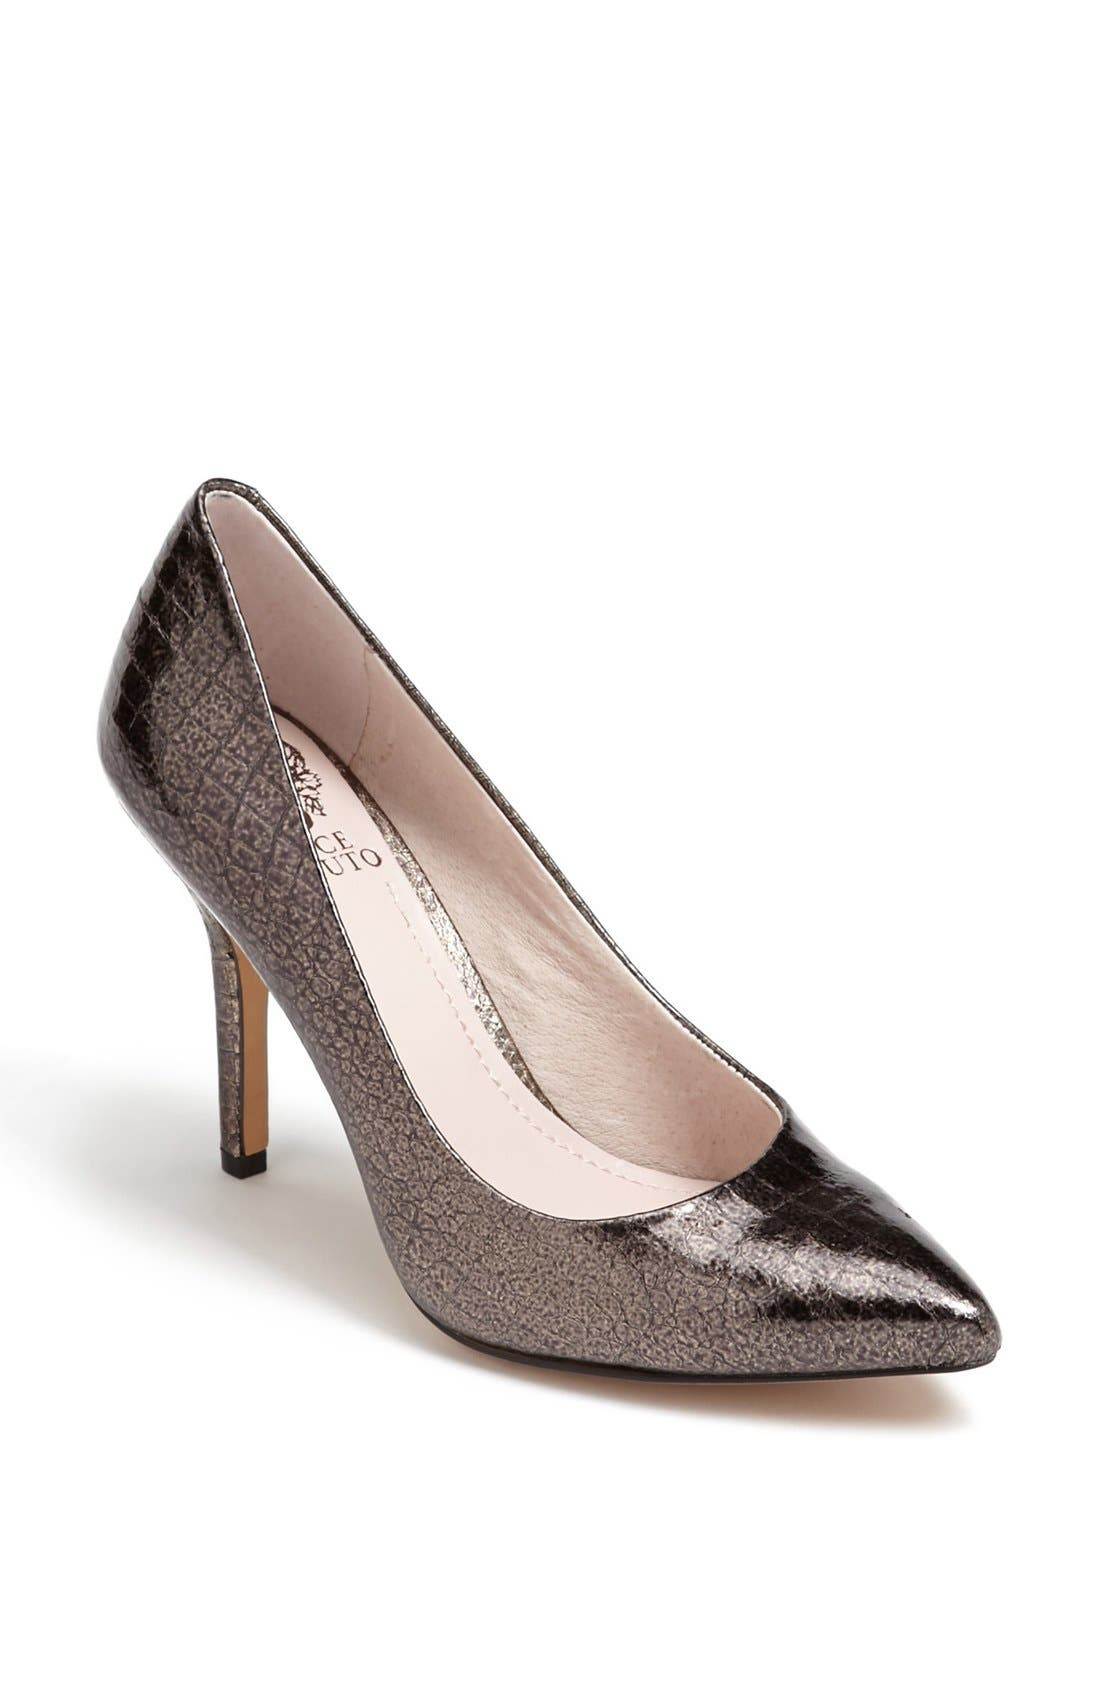 Main Image - Vince Camuto 'Hallee' Pump (Nordstrom Exclusive)